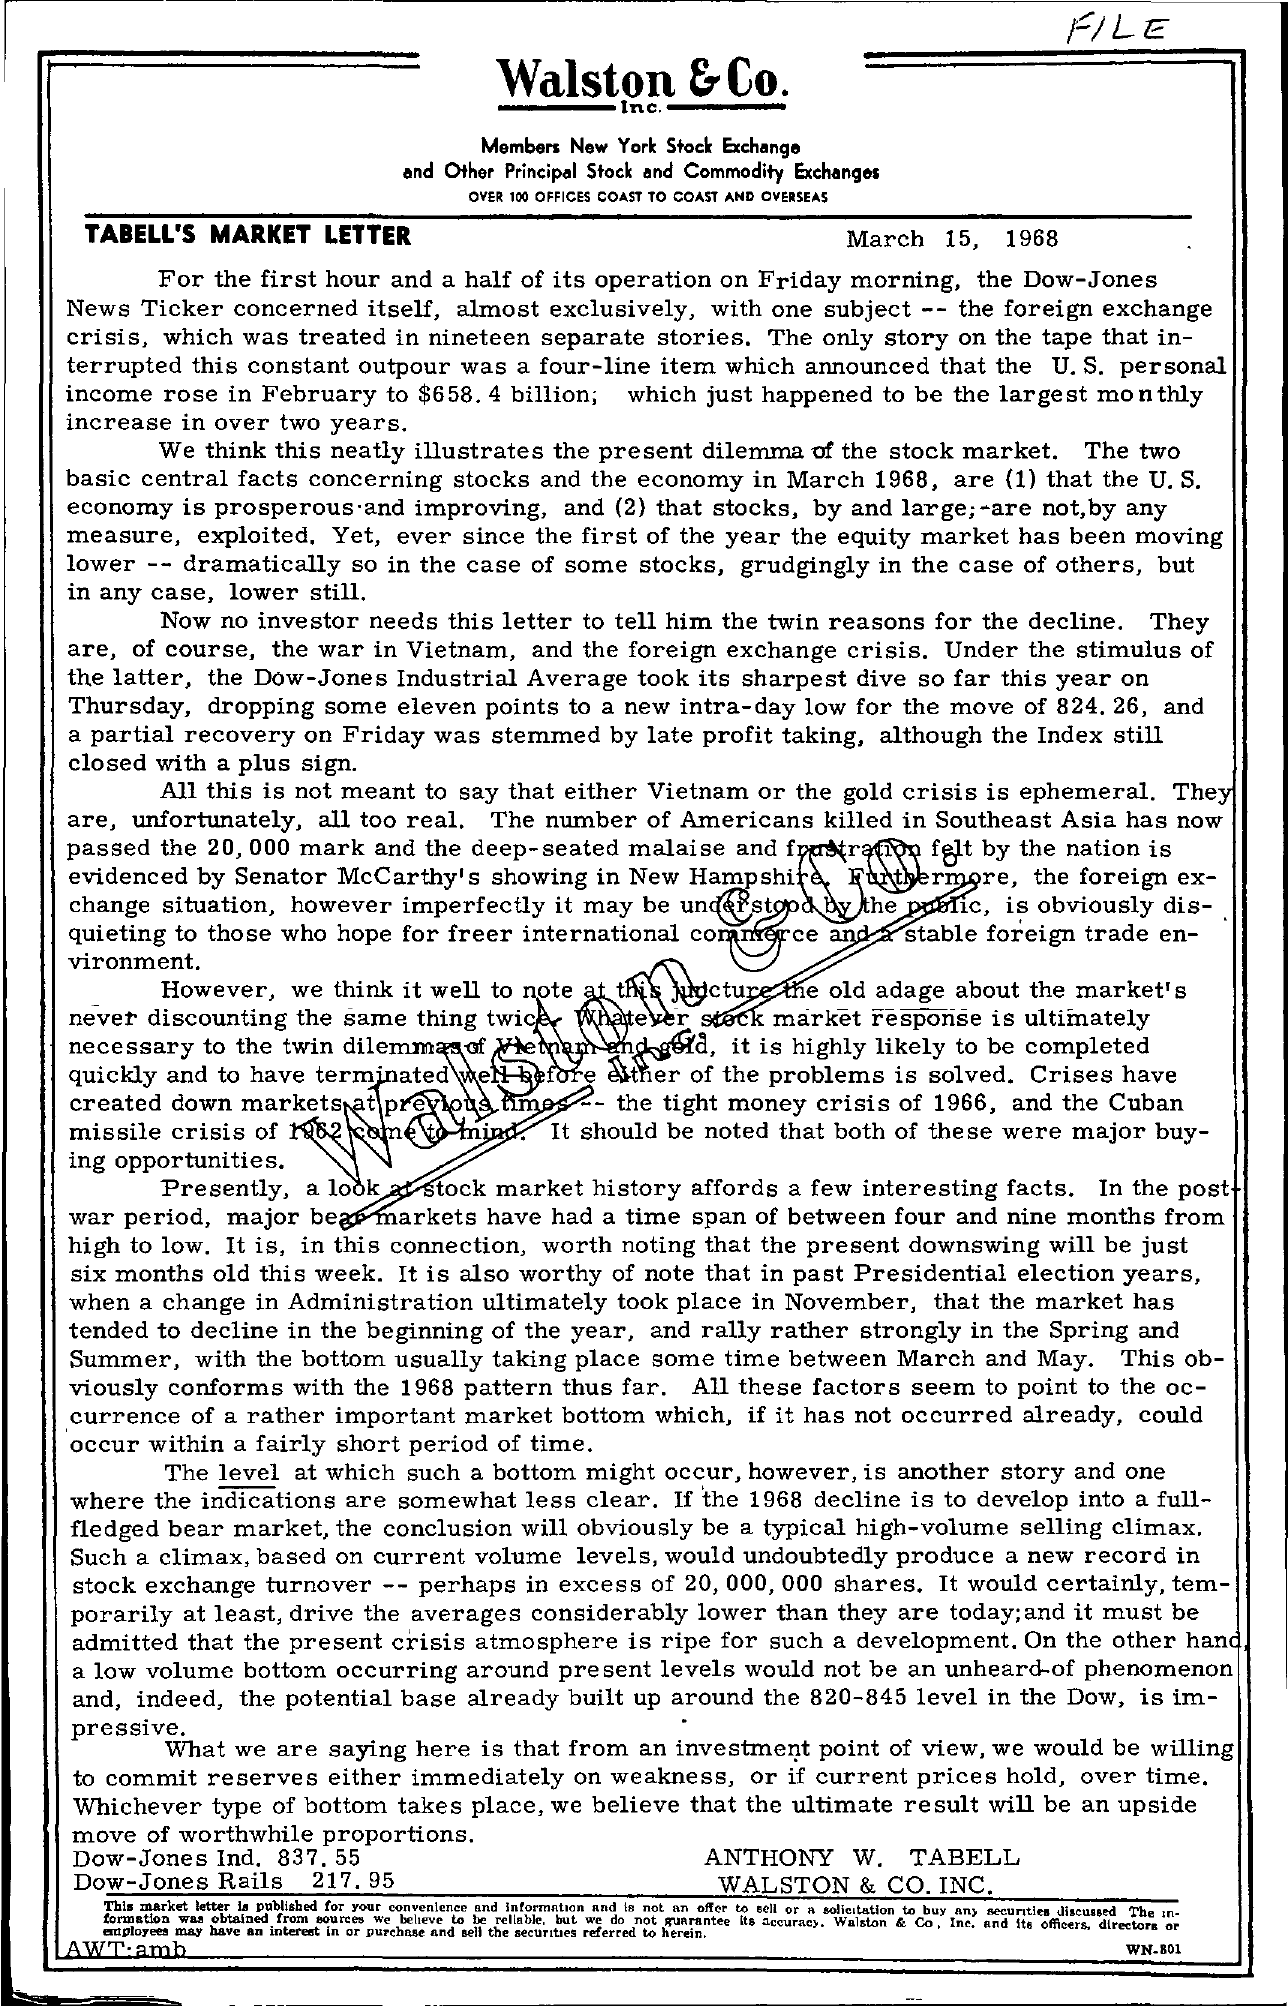 Tabell's Market Letter - March 15, 1968